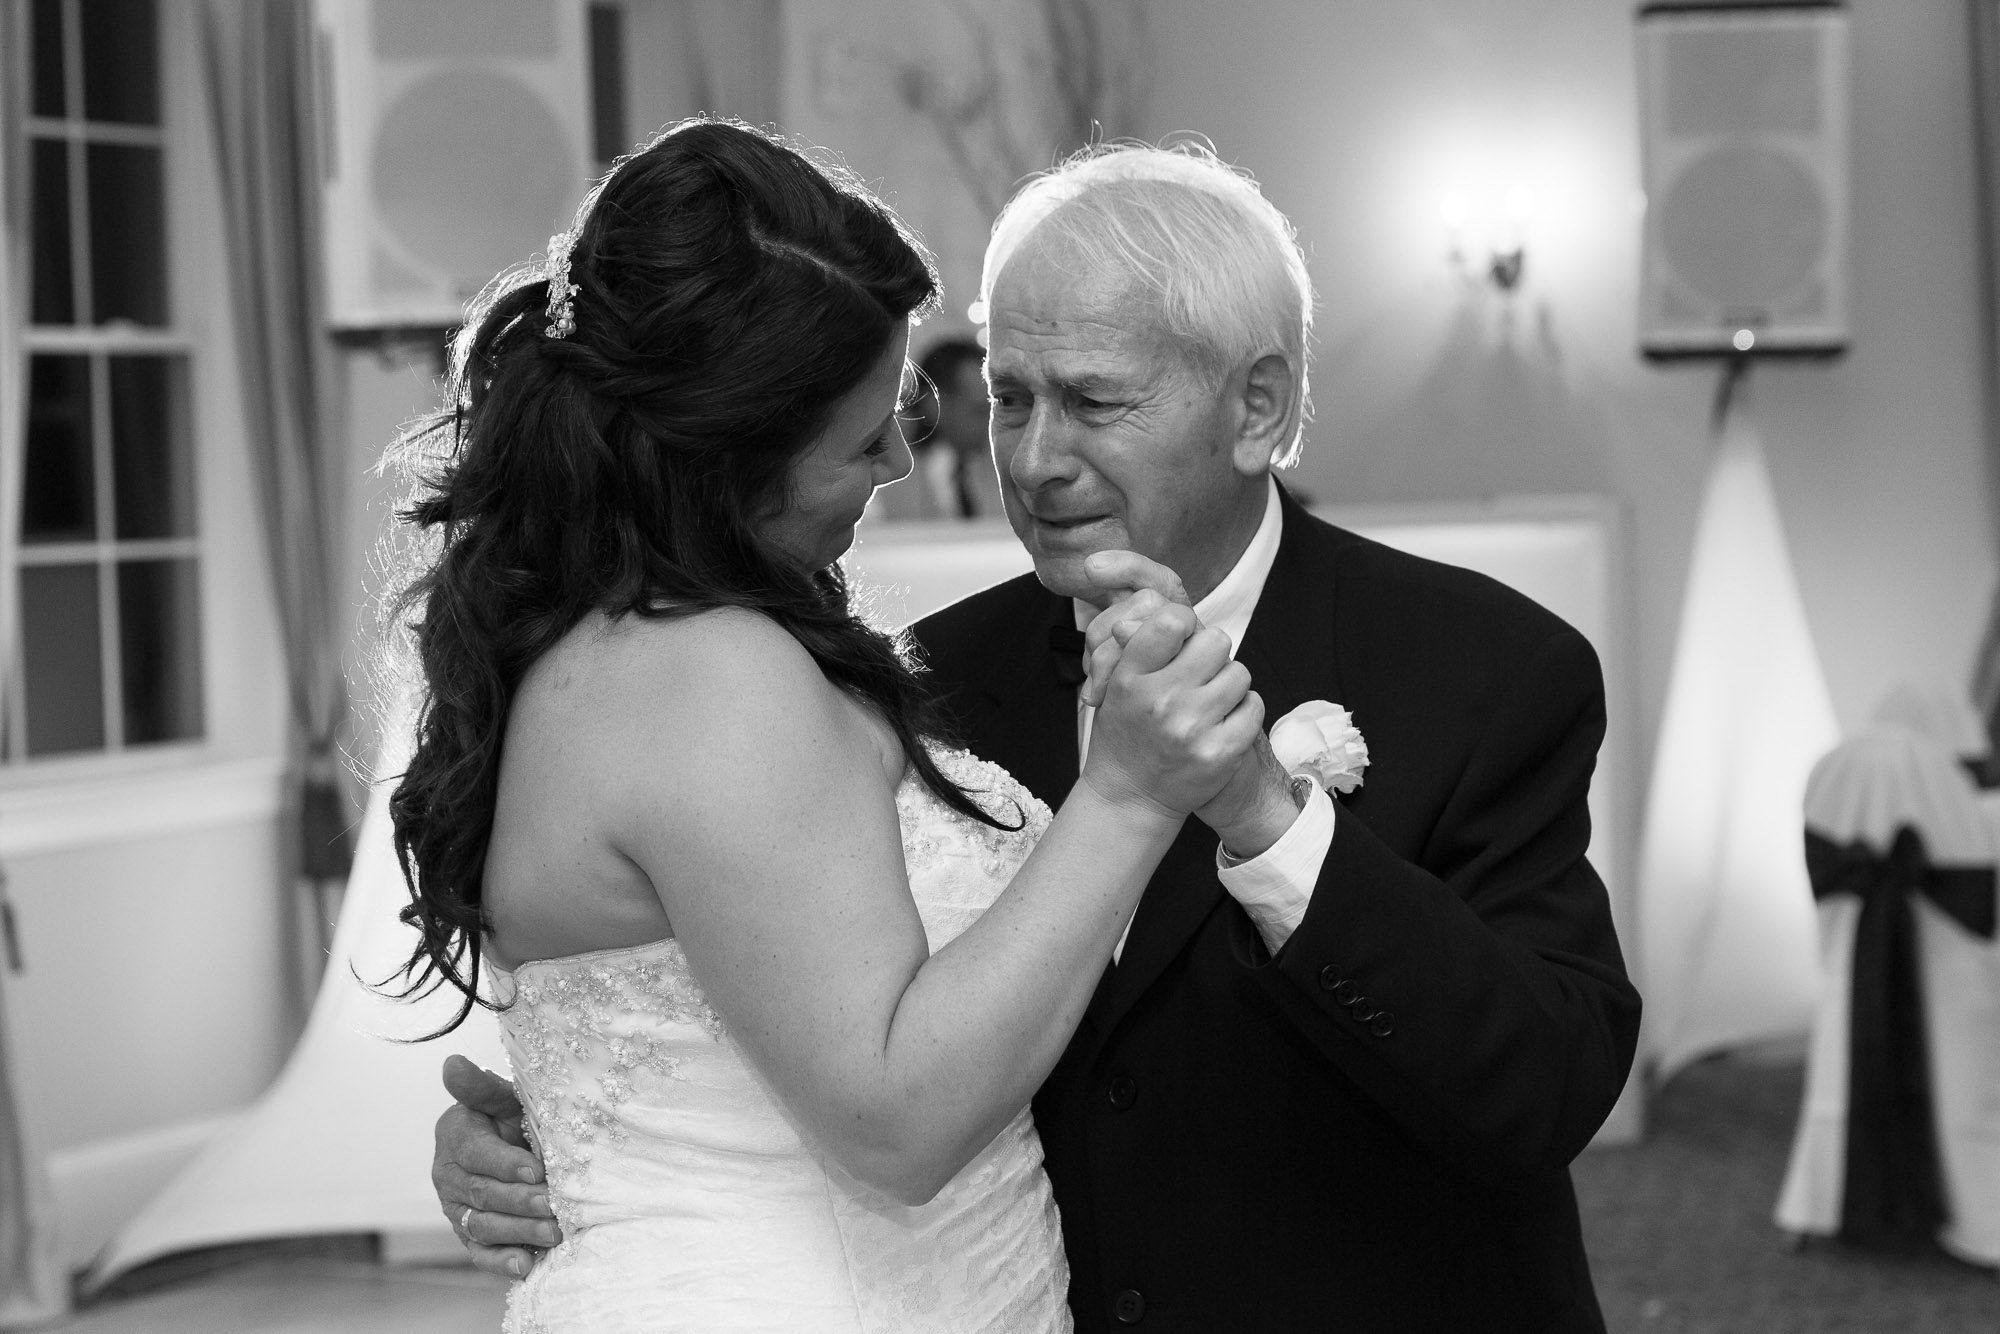 boston-wedding-photographer-26-north-studios-emotional-father-daughter-dance.jpg